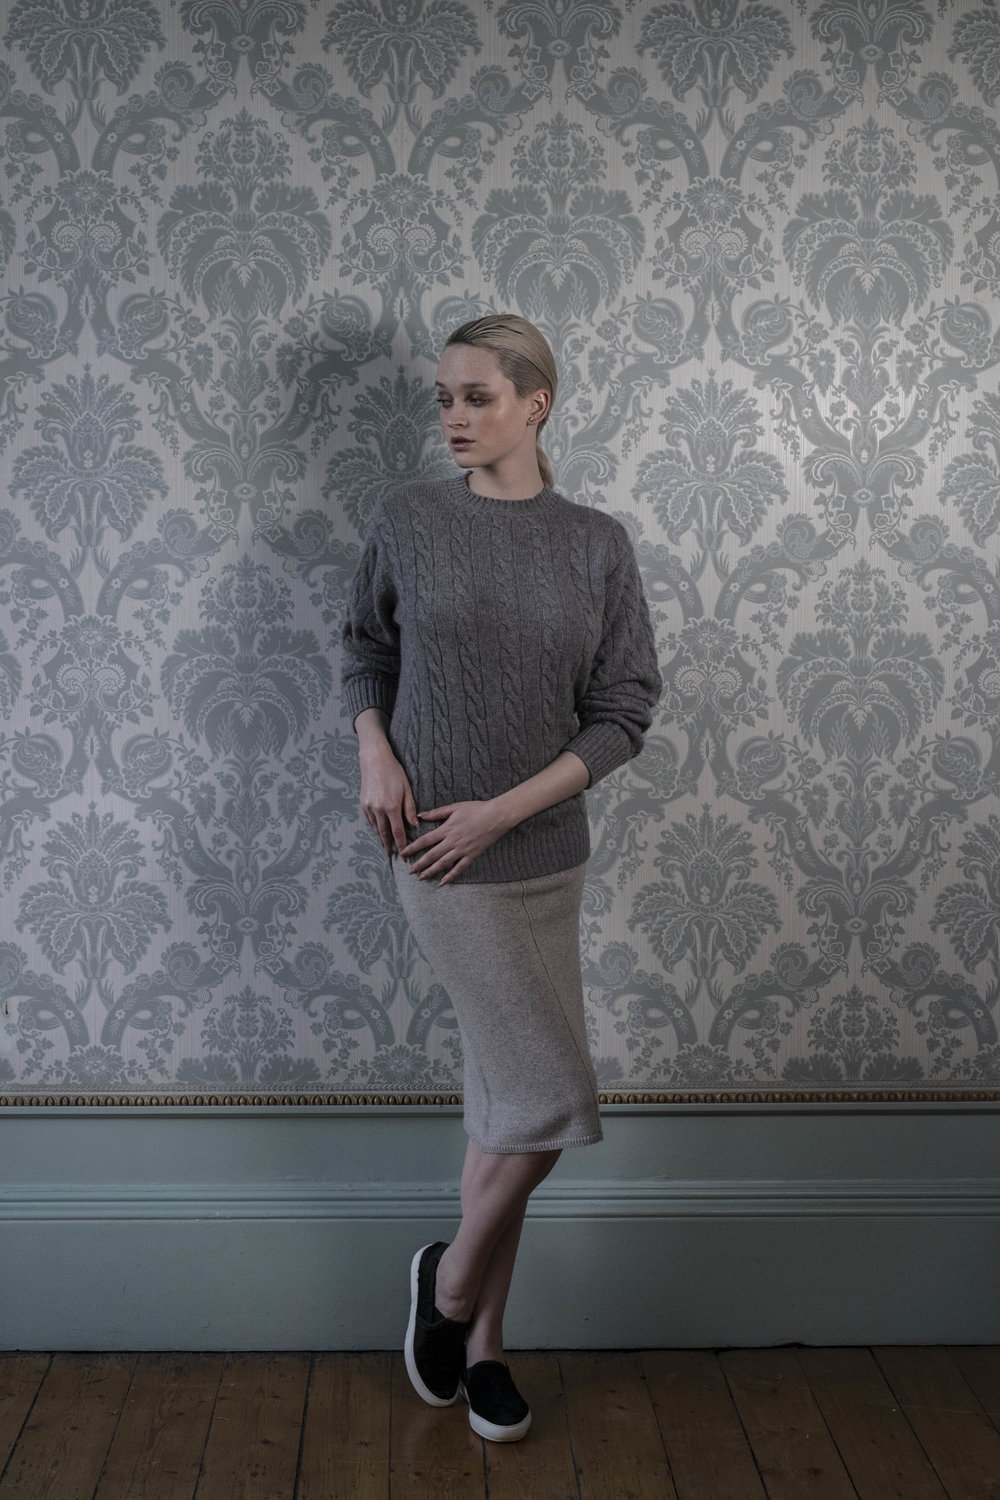 Linda shot by Brian Sweeney for Cashmere: a guide to Scottish luxury